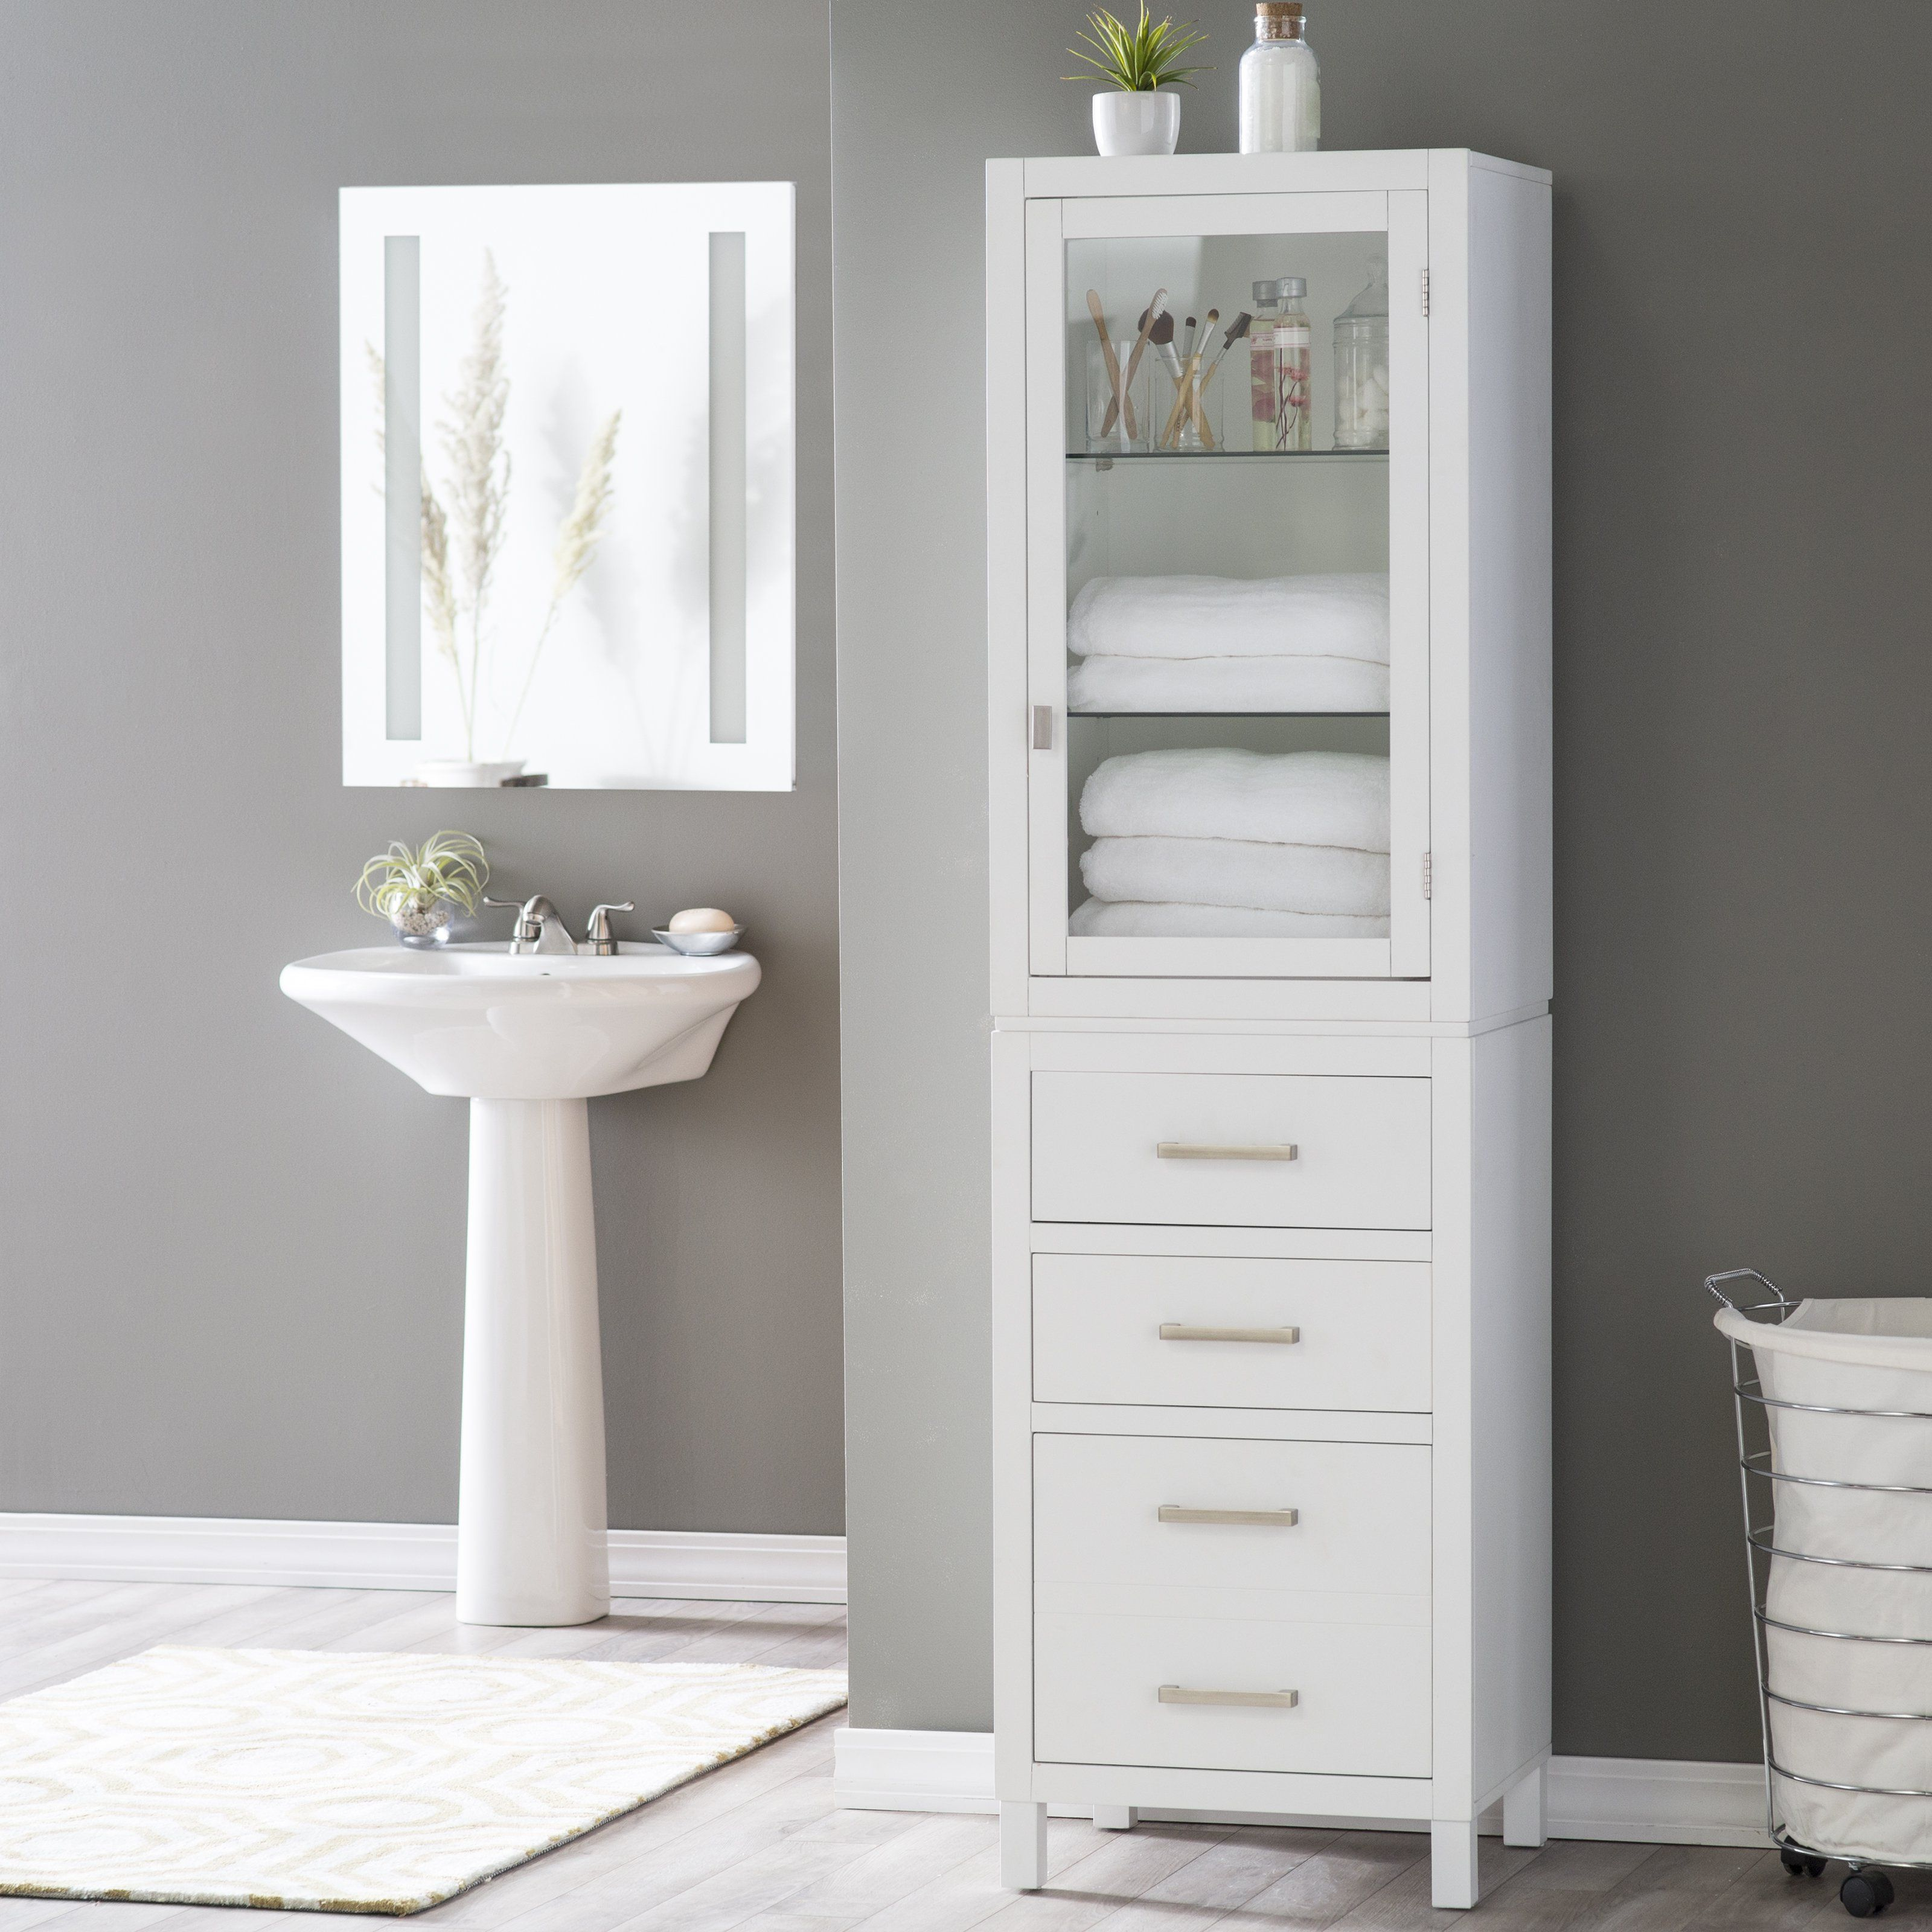 Elegant Bathroom Interesting Bathroom Storage Furniture Design Featuring For Ikea Bathroom Storage